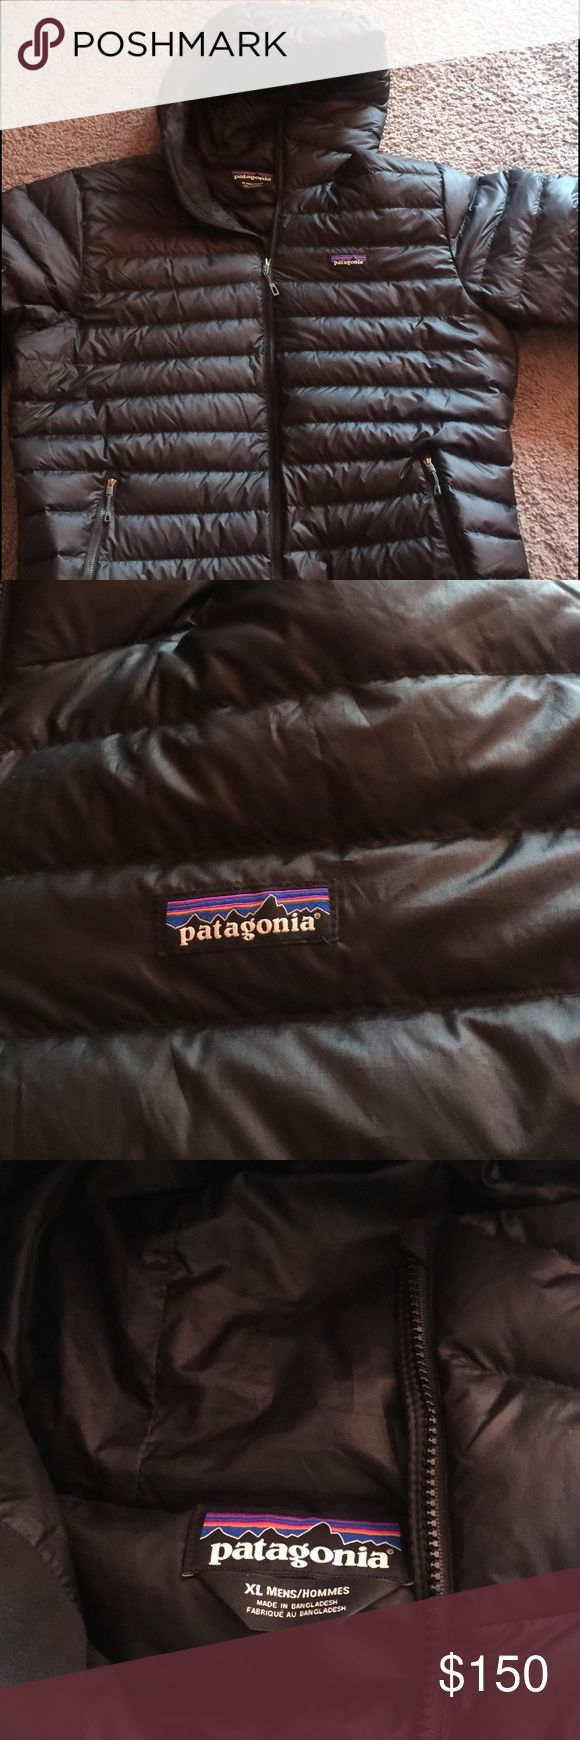 Patagonia Down sweater Hoody Jacket A Patagonia Down Sweater Hoody Jacket. Wind proof and water resistant. Incredibly warm and light. Stylish and functional. Is in excellent condition, looks brand new. Patagonia Jackets & Coats Puffers